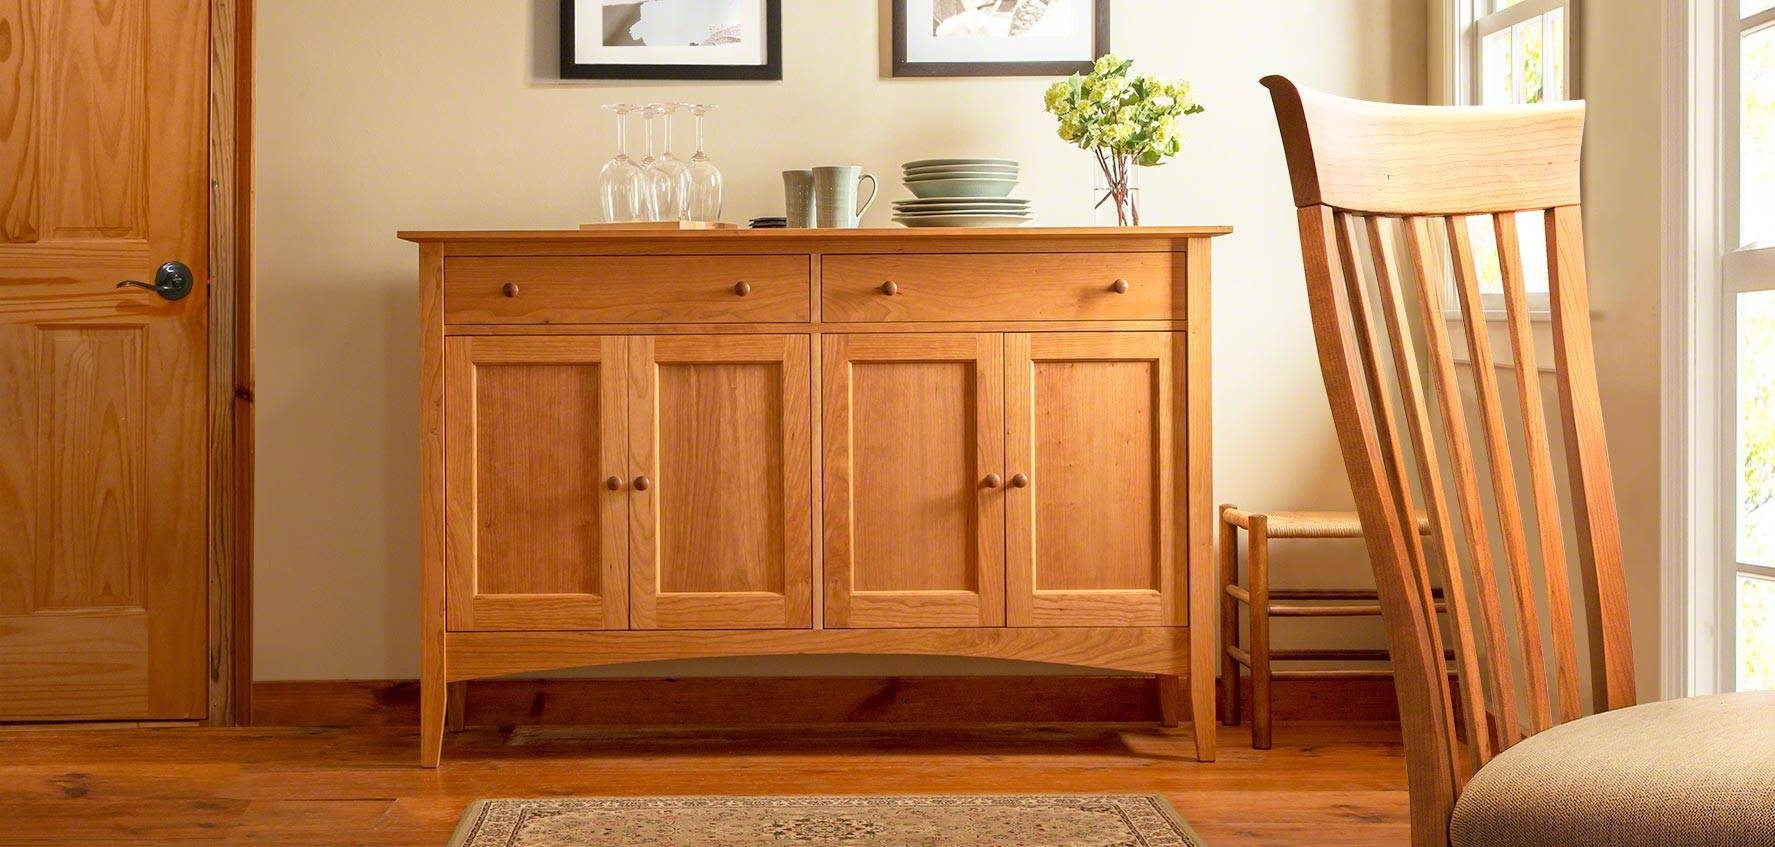 Solid Wood Sideboards, Buffets, & Hutches - Vermont Woods Studios for Wood Sideboards (Image 29 of 30)